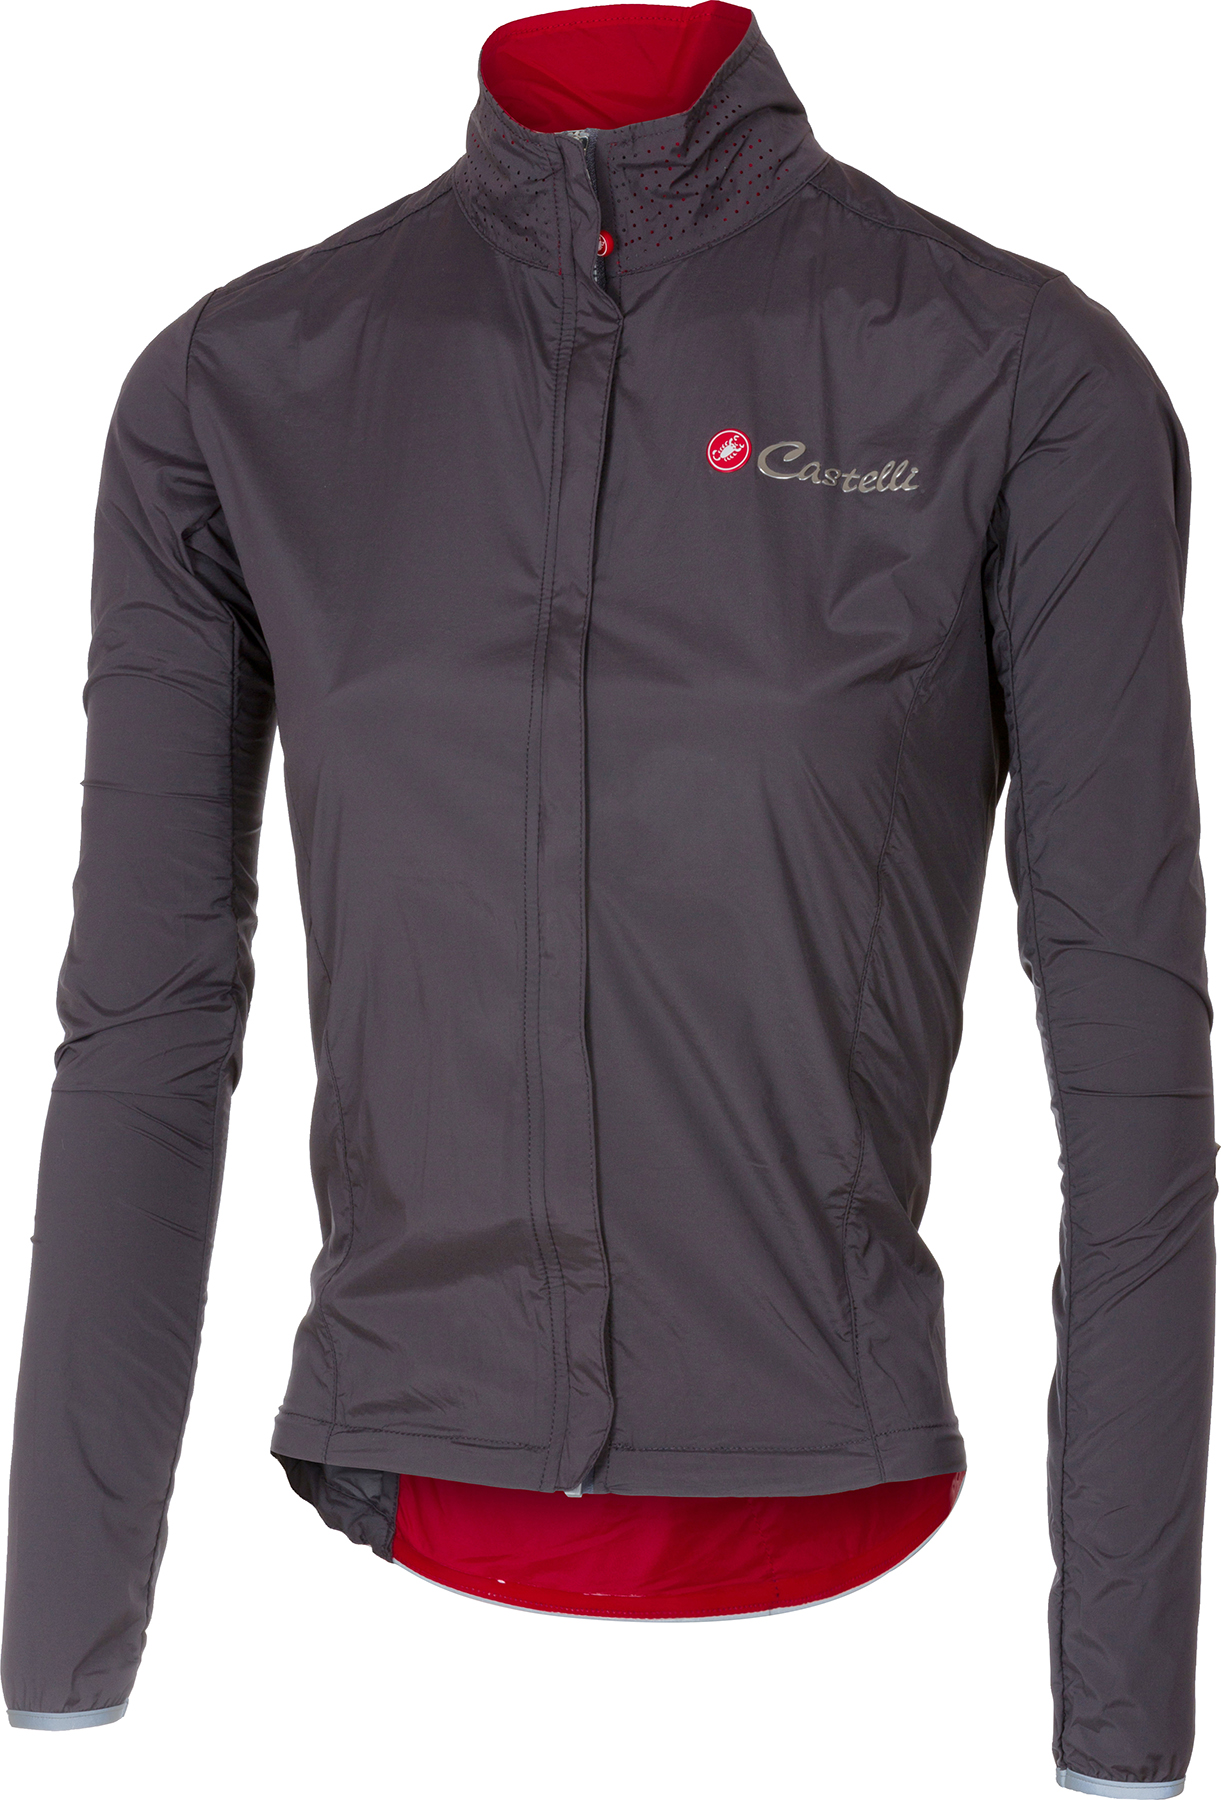 Castelli - Sempre | bike jacket